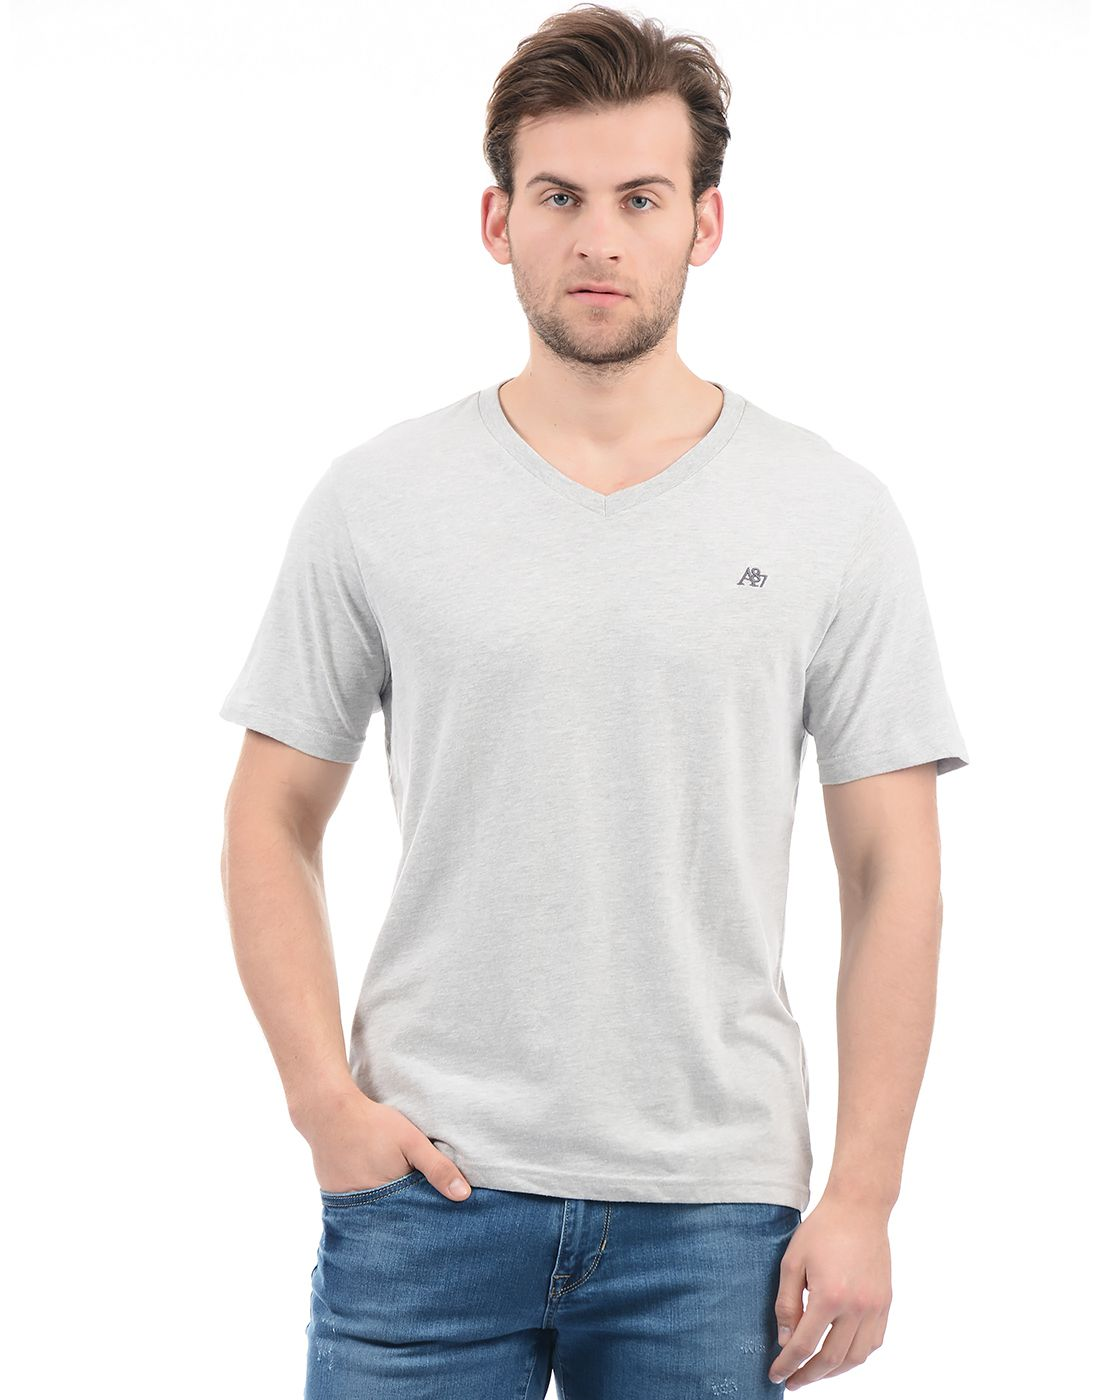 Aeropostale Grey V-Neck T-Shirt